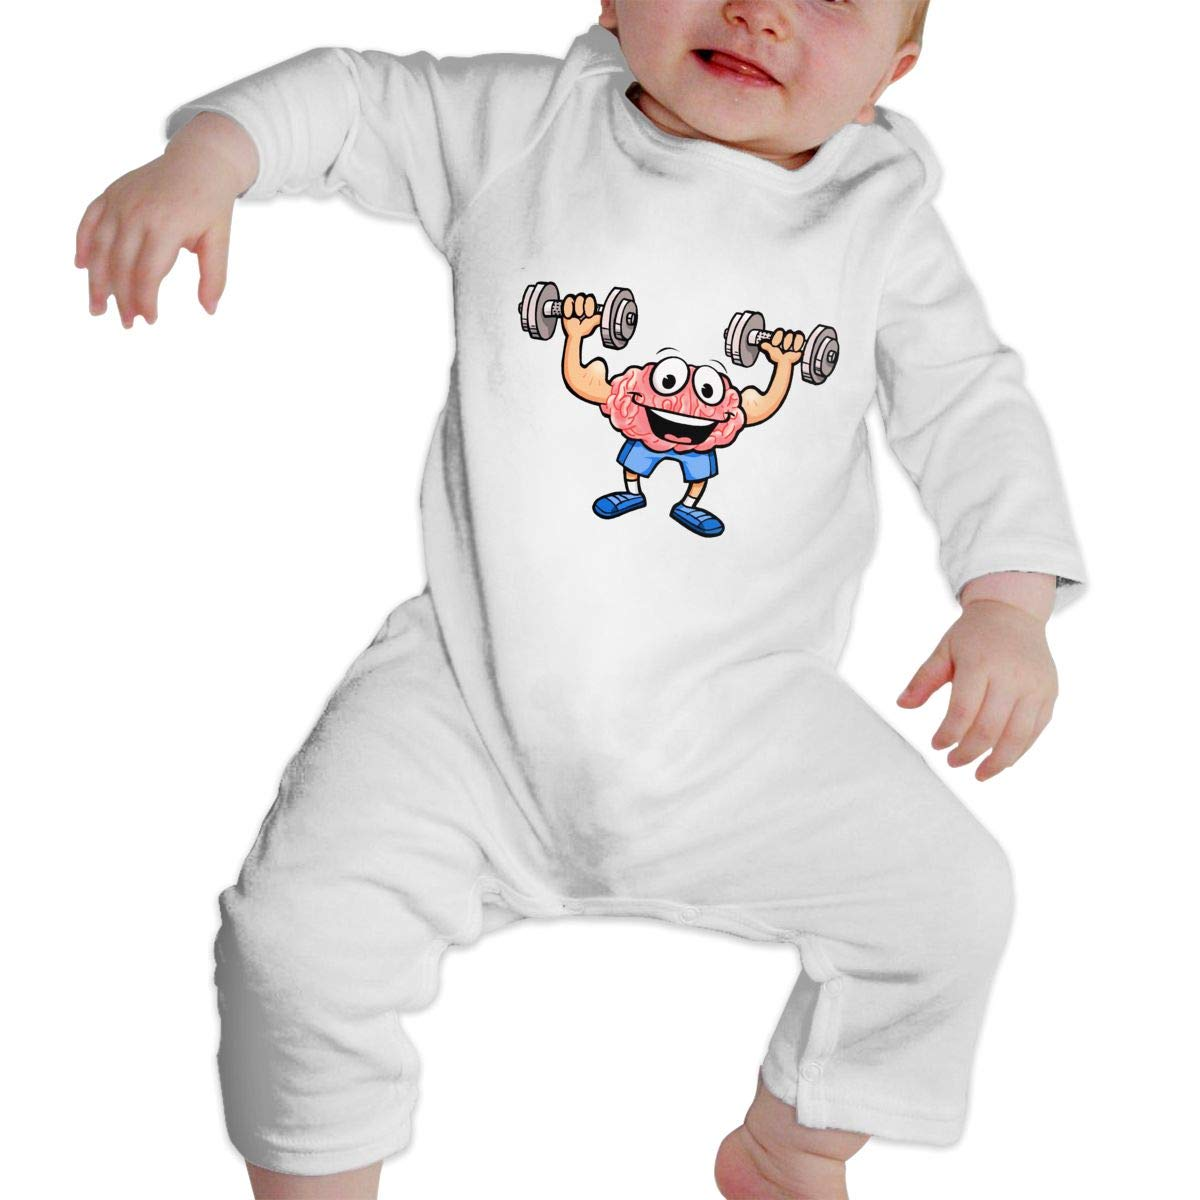 A1BY-5US Infant Babys Cotton Long Sleeve Cartoon Brain Training Climb Romper Funny Printed Romper Clothes